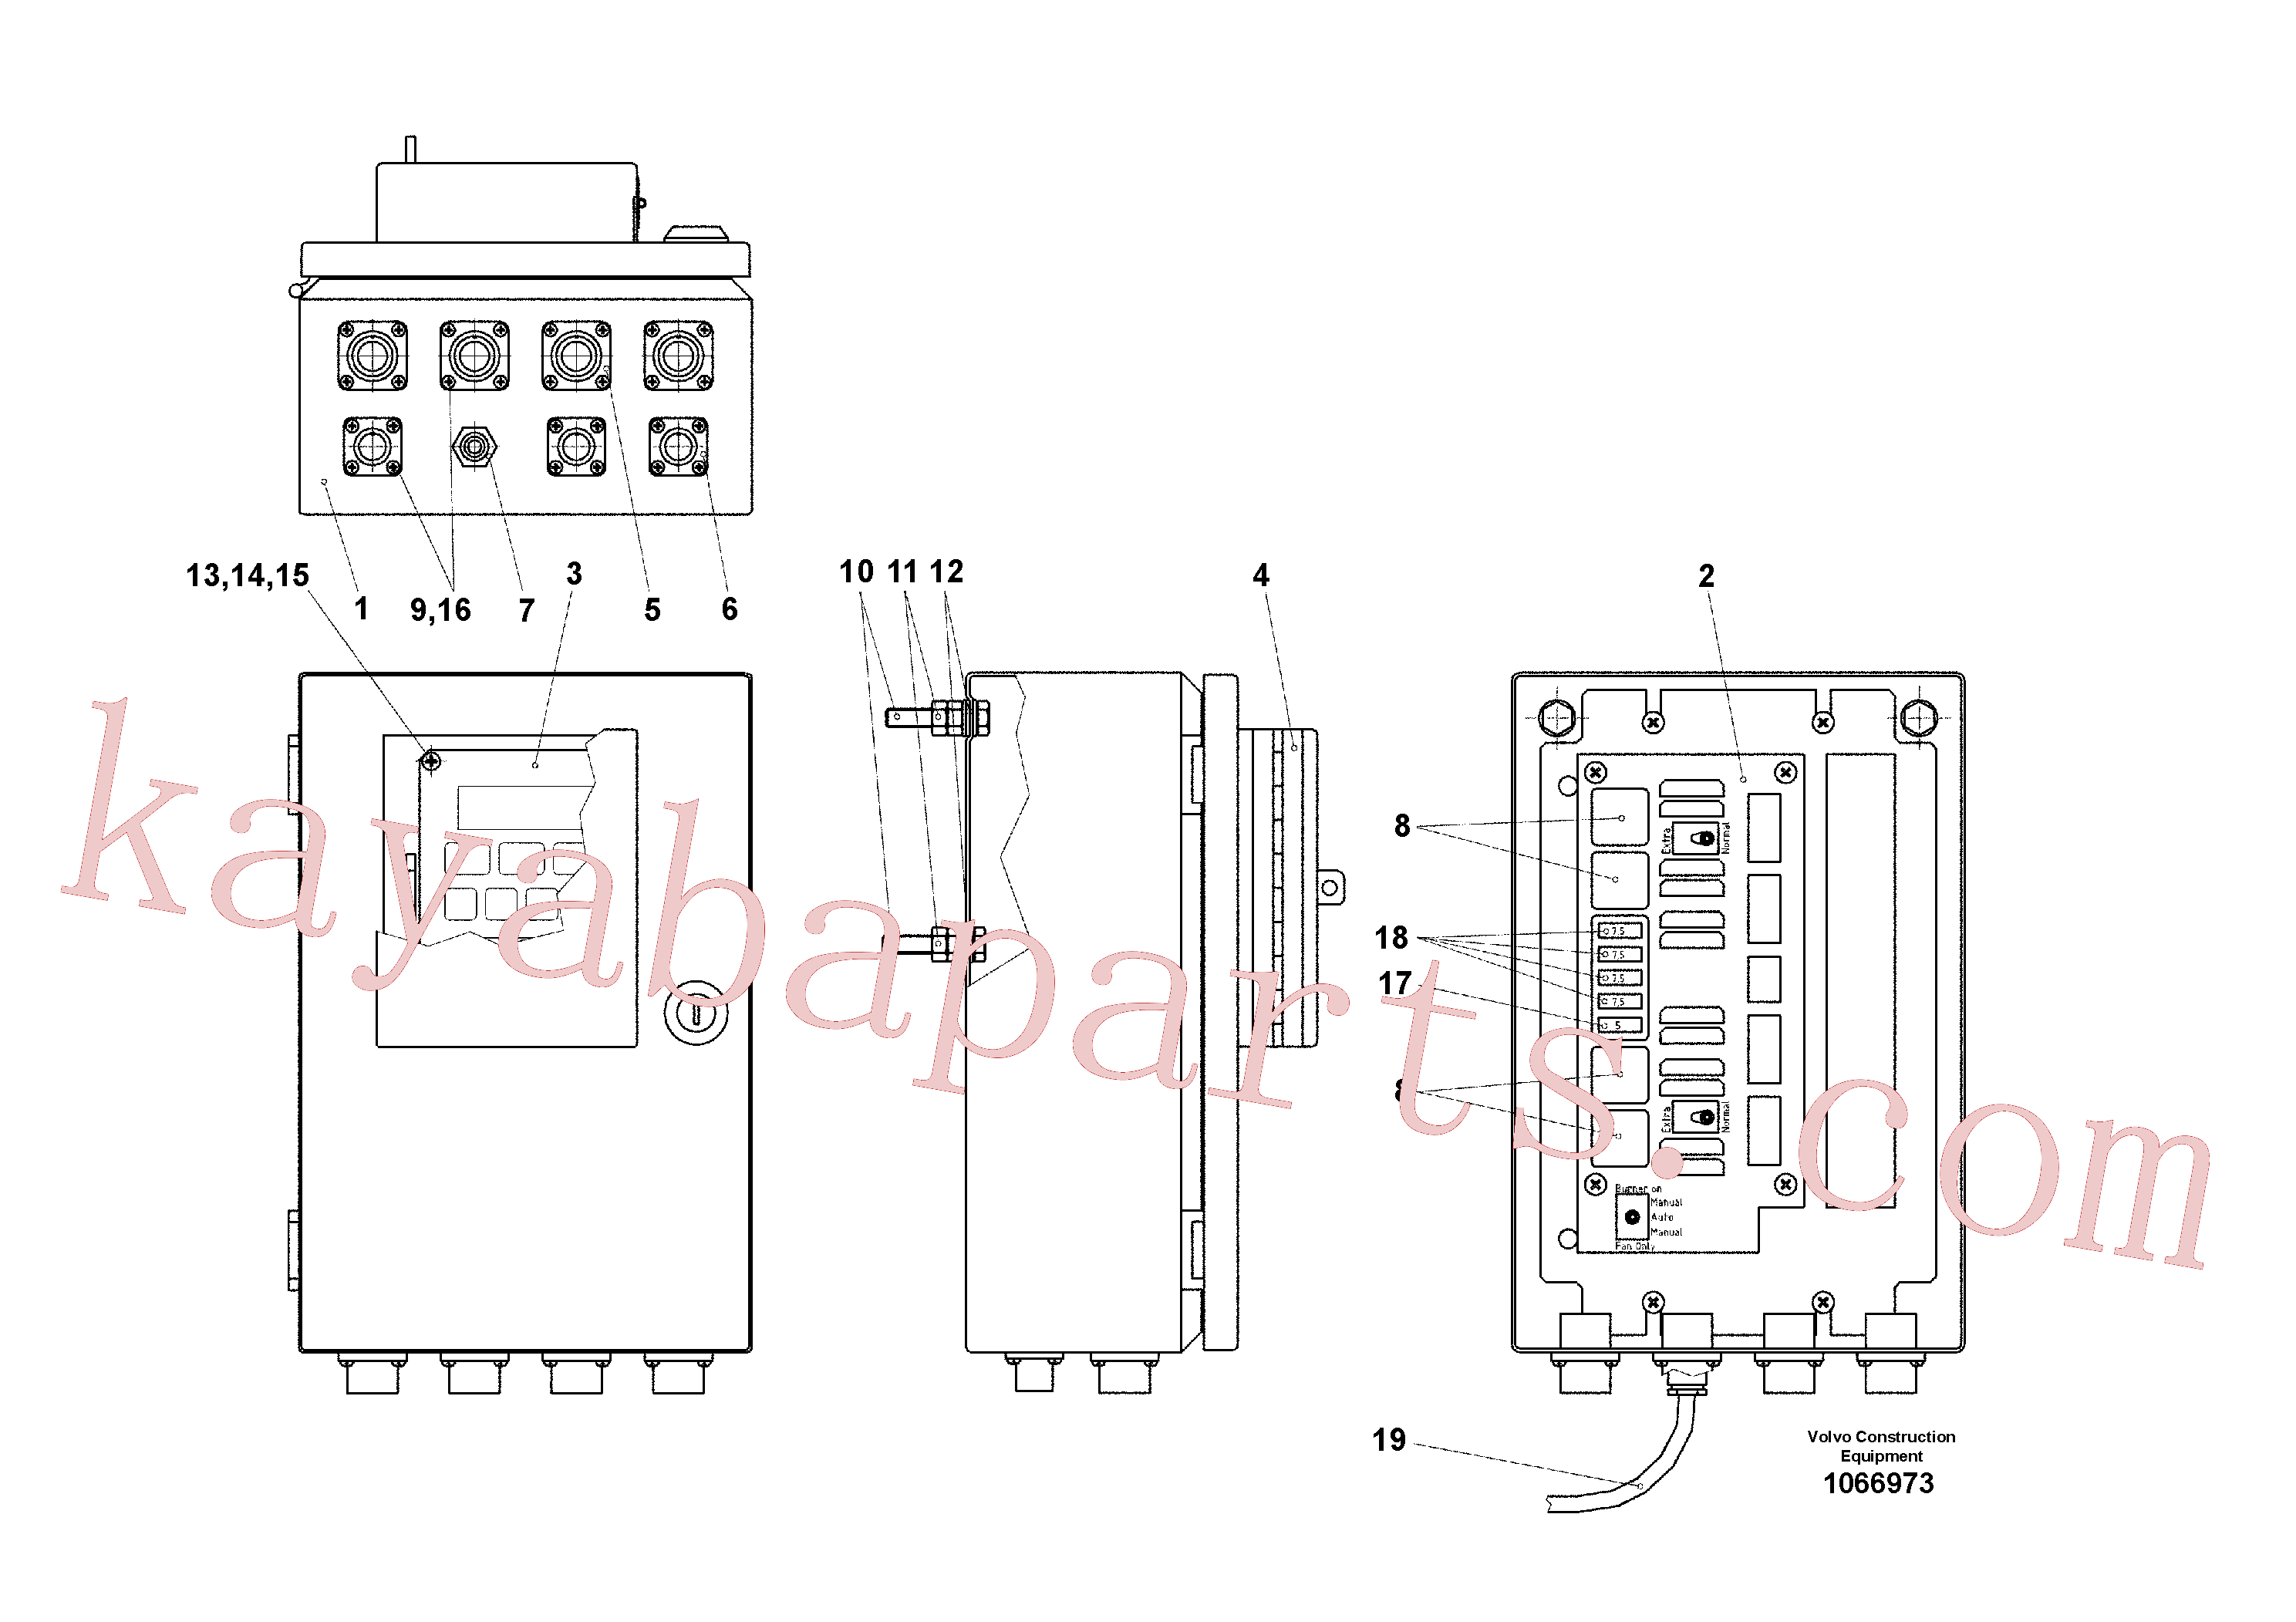 VOE13980555 for Volvo Thermo Control(1066973 assembly)